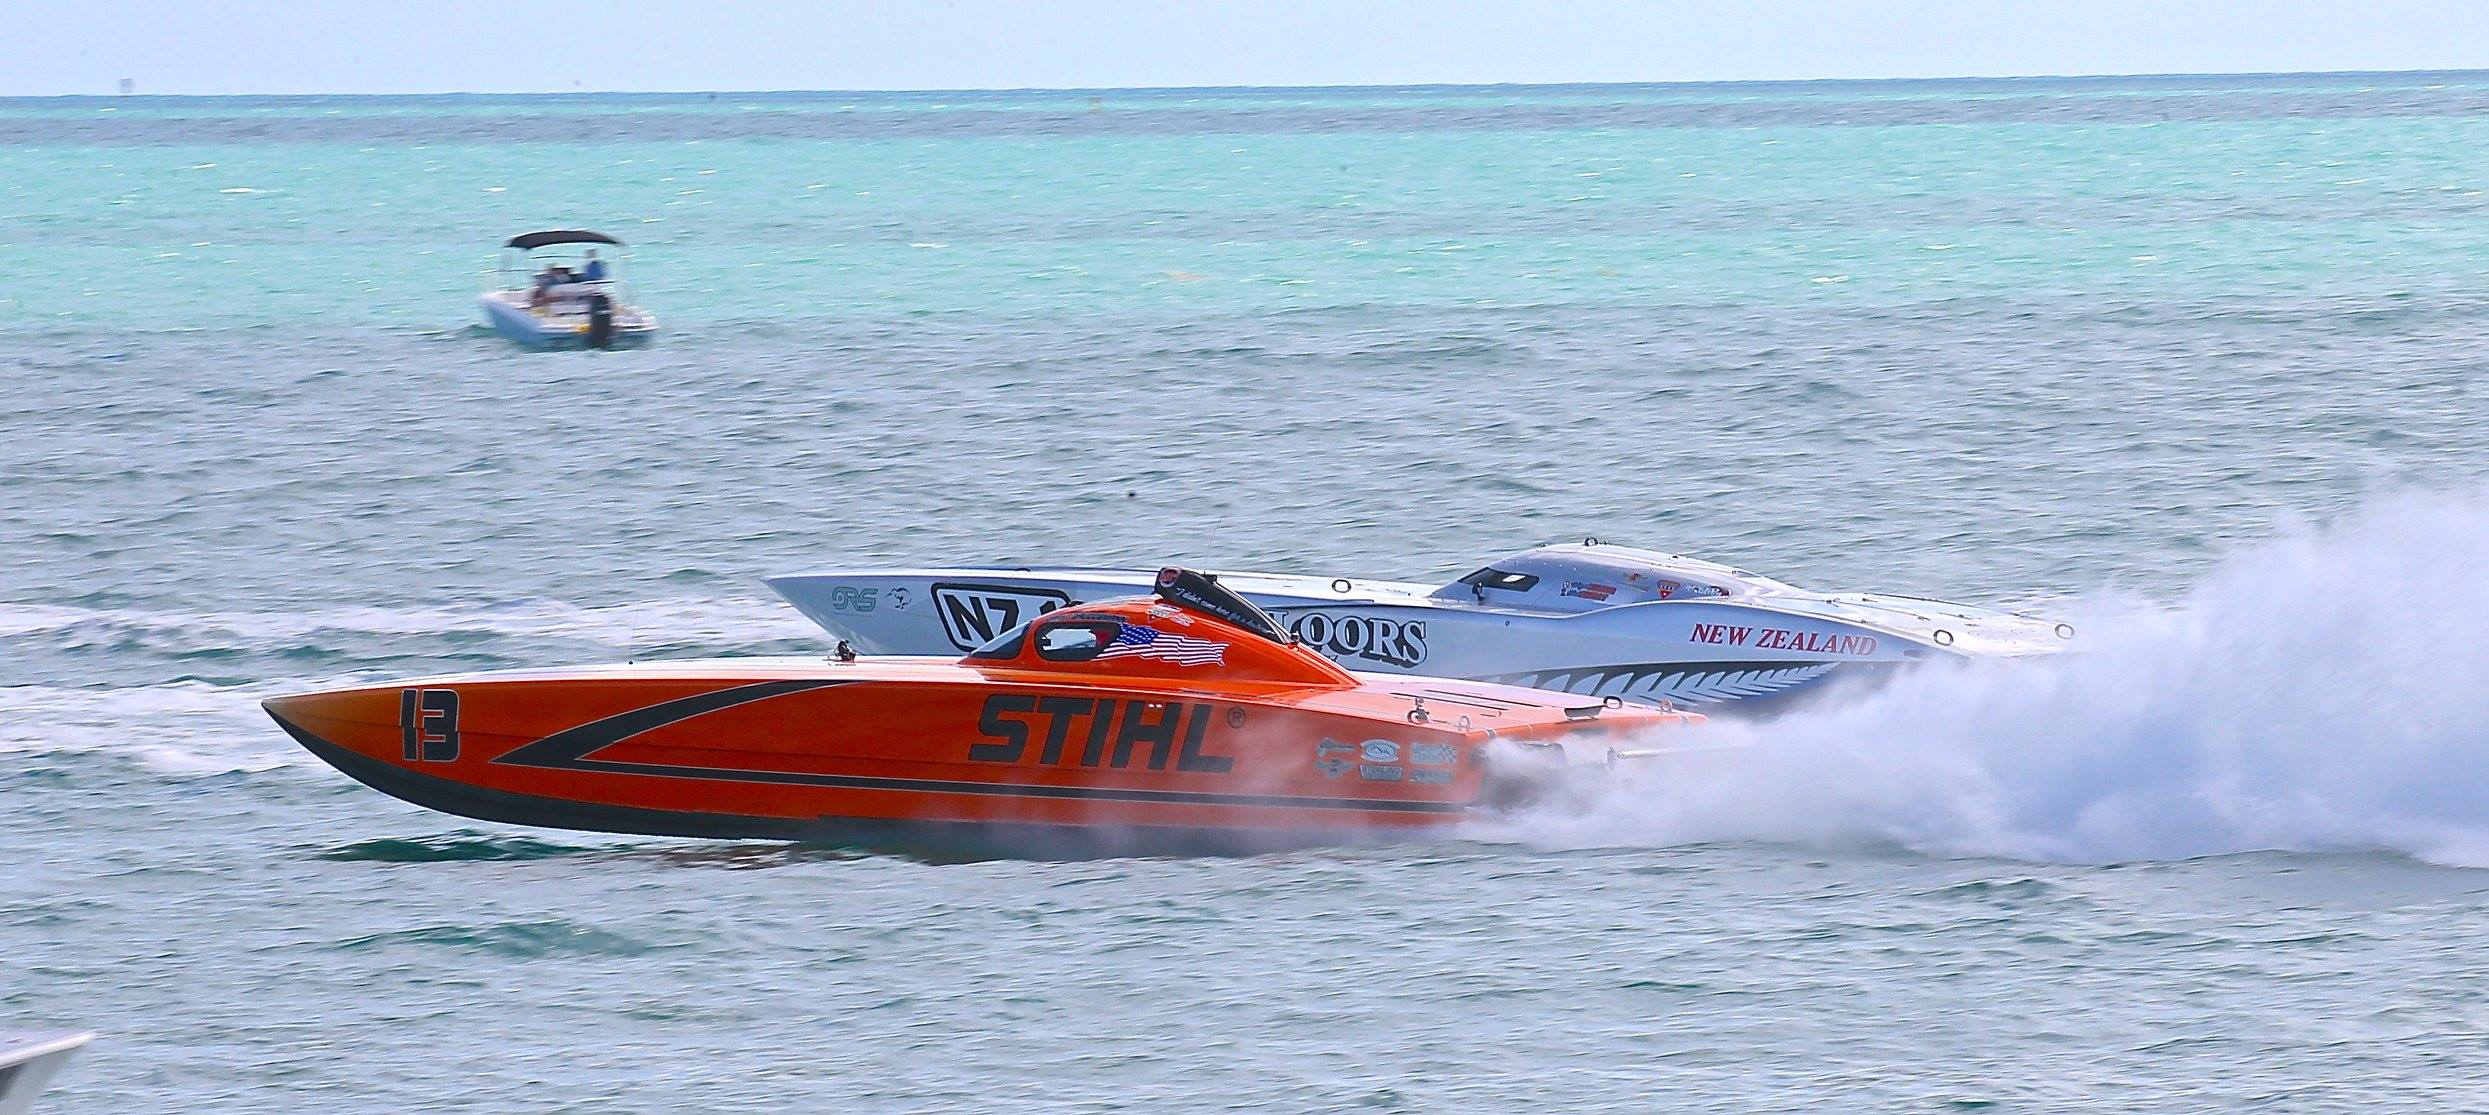 STIHL took third-place overall in last week's three-race Super Boat International Offshore World Championships. Photo by Pete Boden/Shoot 2 Thrill Pix. (https://www.facebook.com/Shoot-2-Thrill-Pix-130528070292399/)